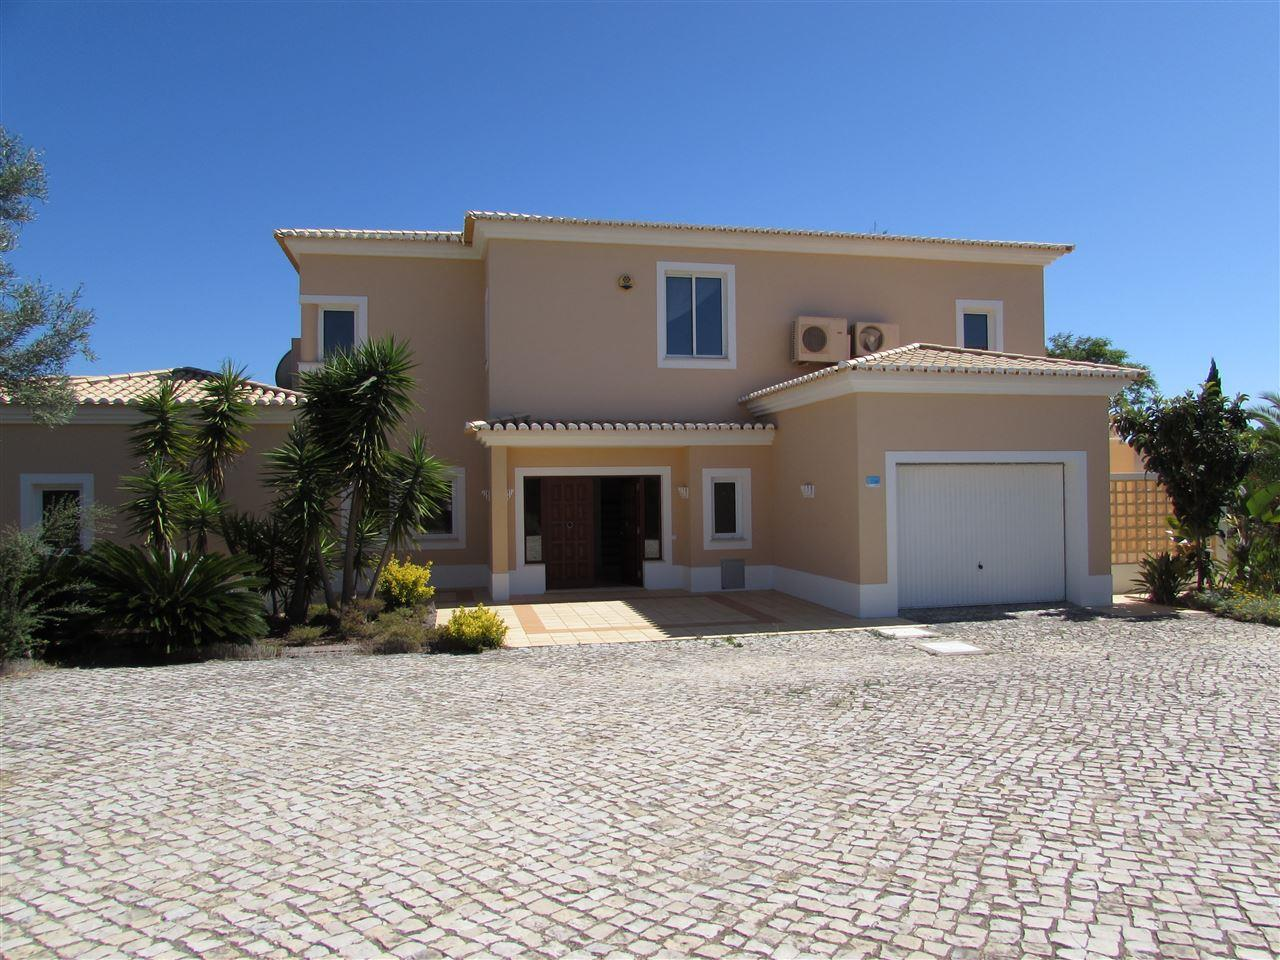 Maison unifamiliale pour l Vente à Detached house, 4 bedrooms, for Sale Lagoa, Algarve, Portugal